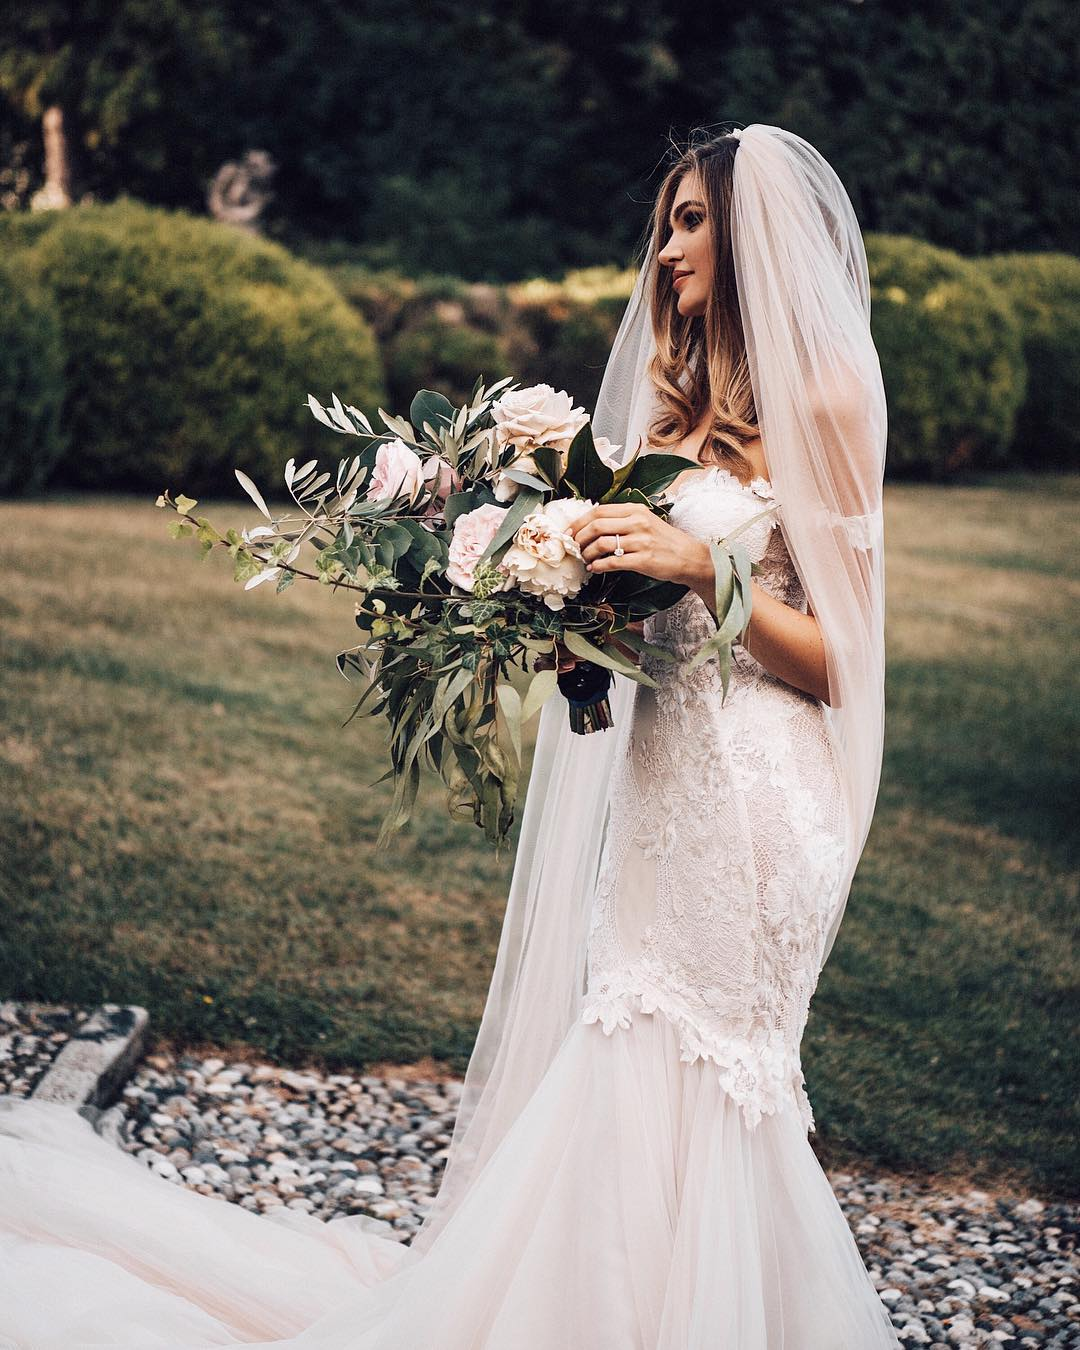 Real bride in Galia Lahav wedding dress off shoulder mermaid wedding dress veil